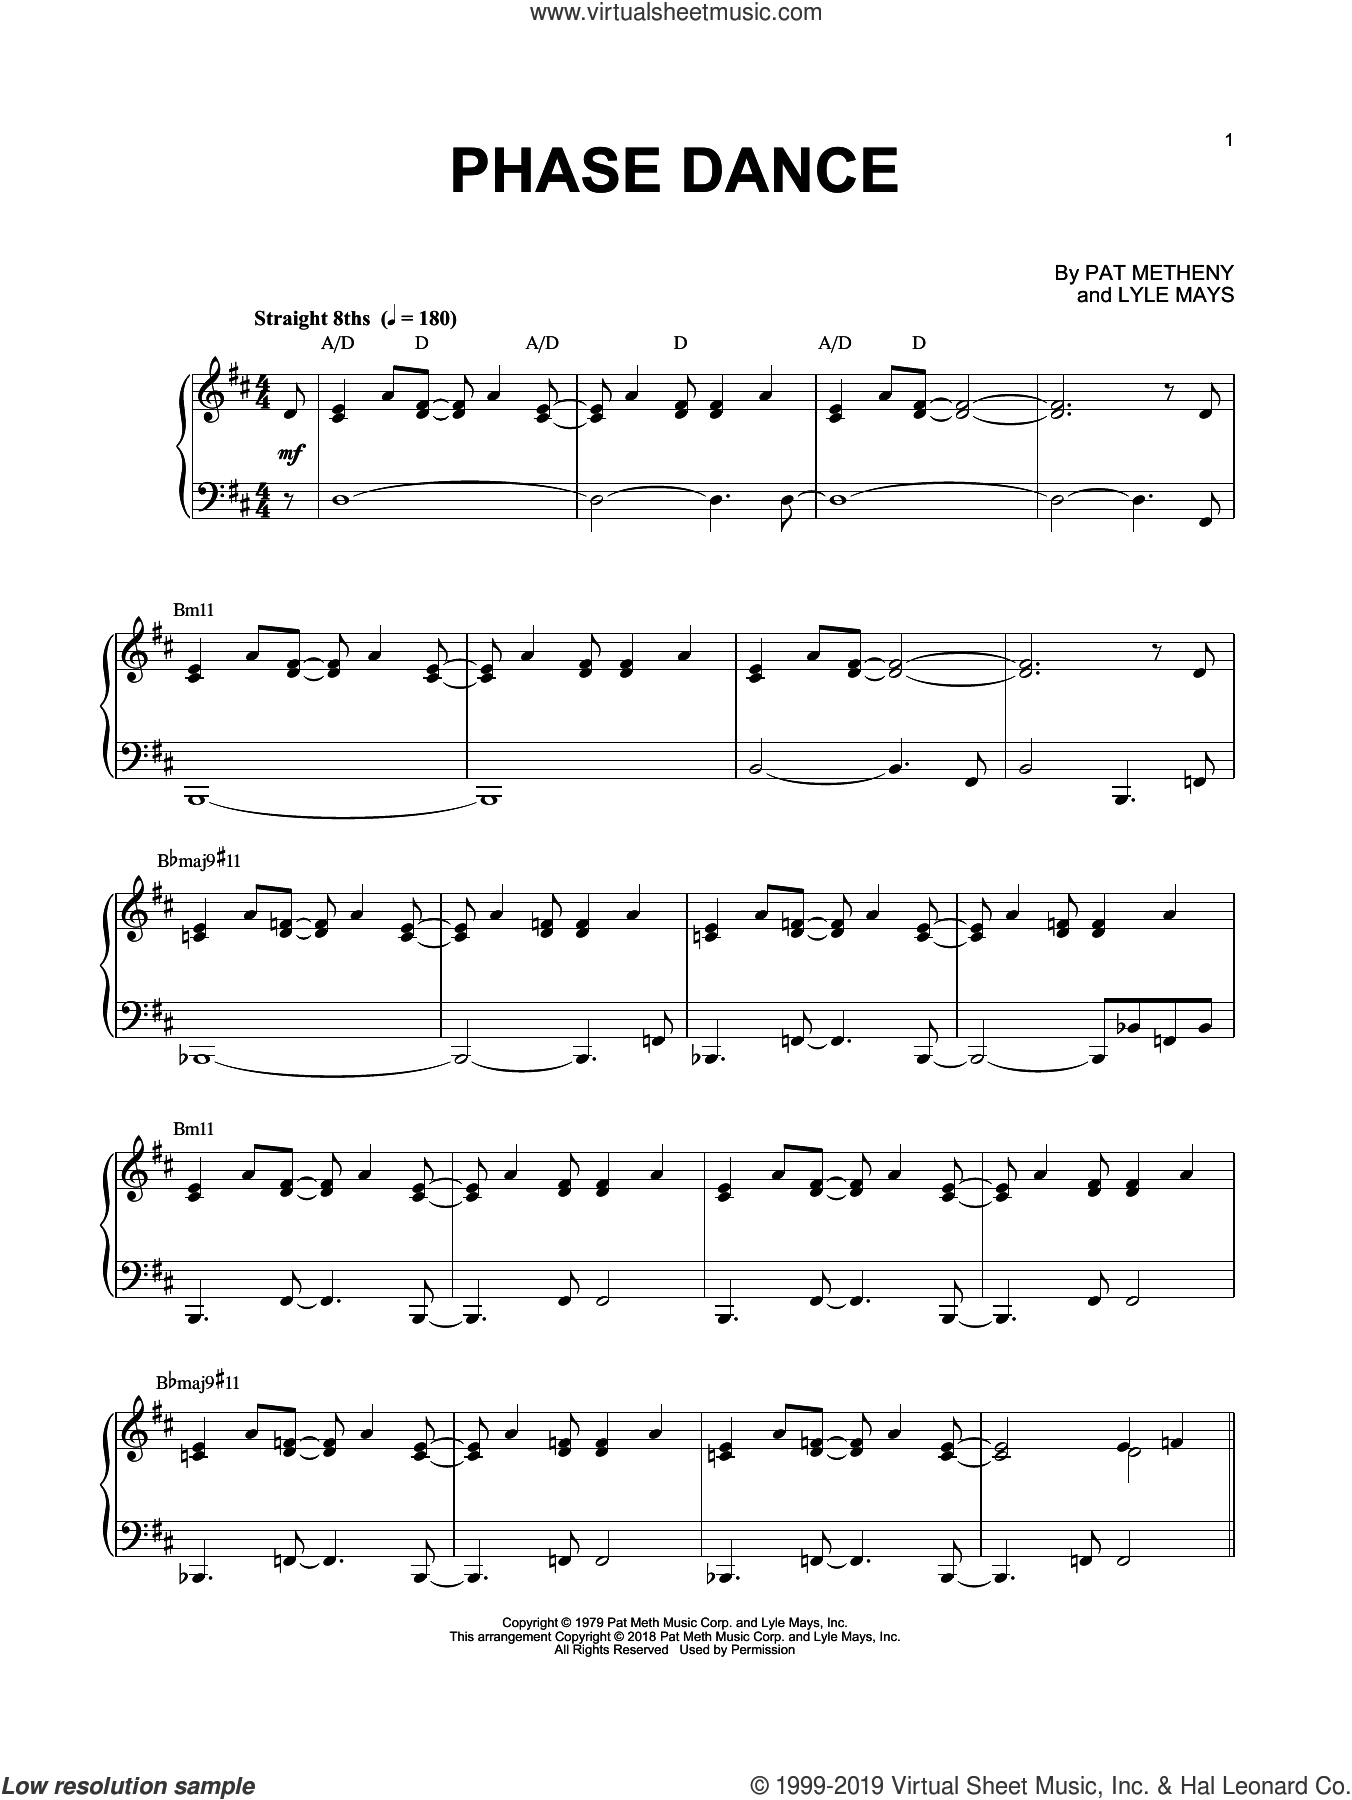 Phase Dance sheet music for piano solo by Pat Metheny and Lyle Mays, intermediate skill level